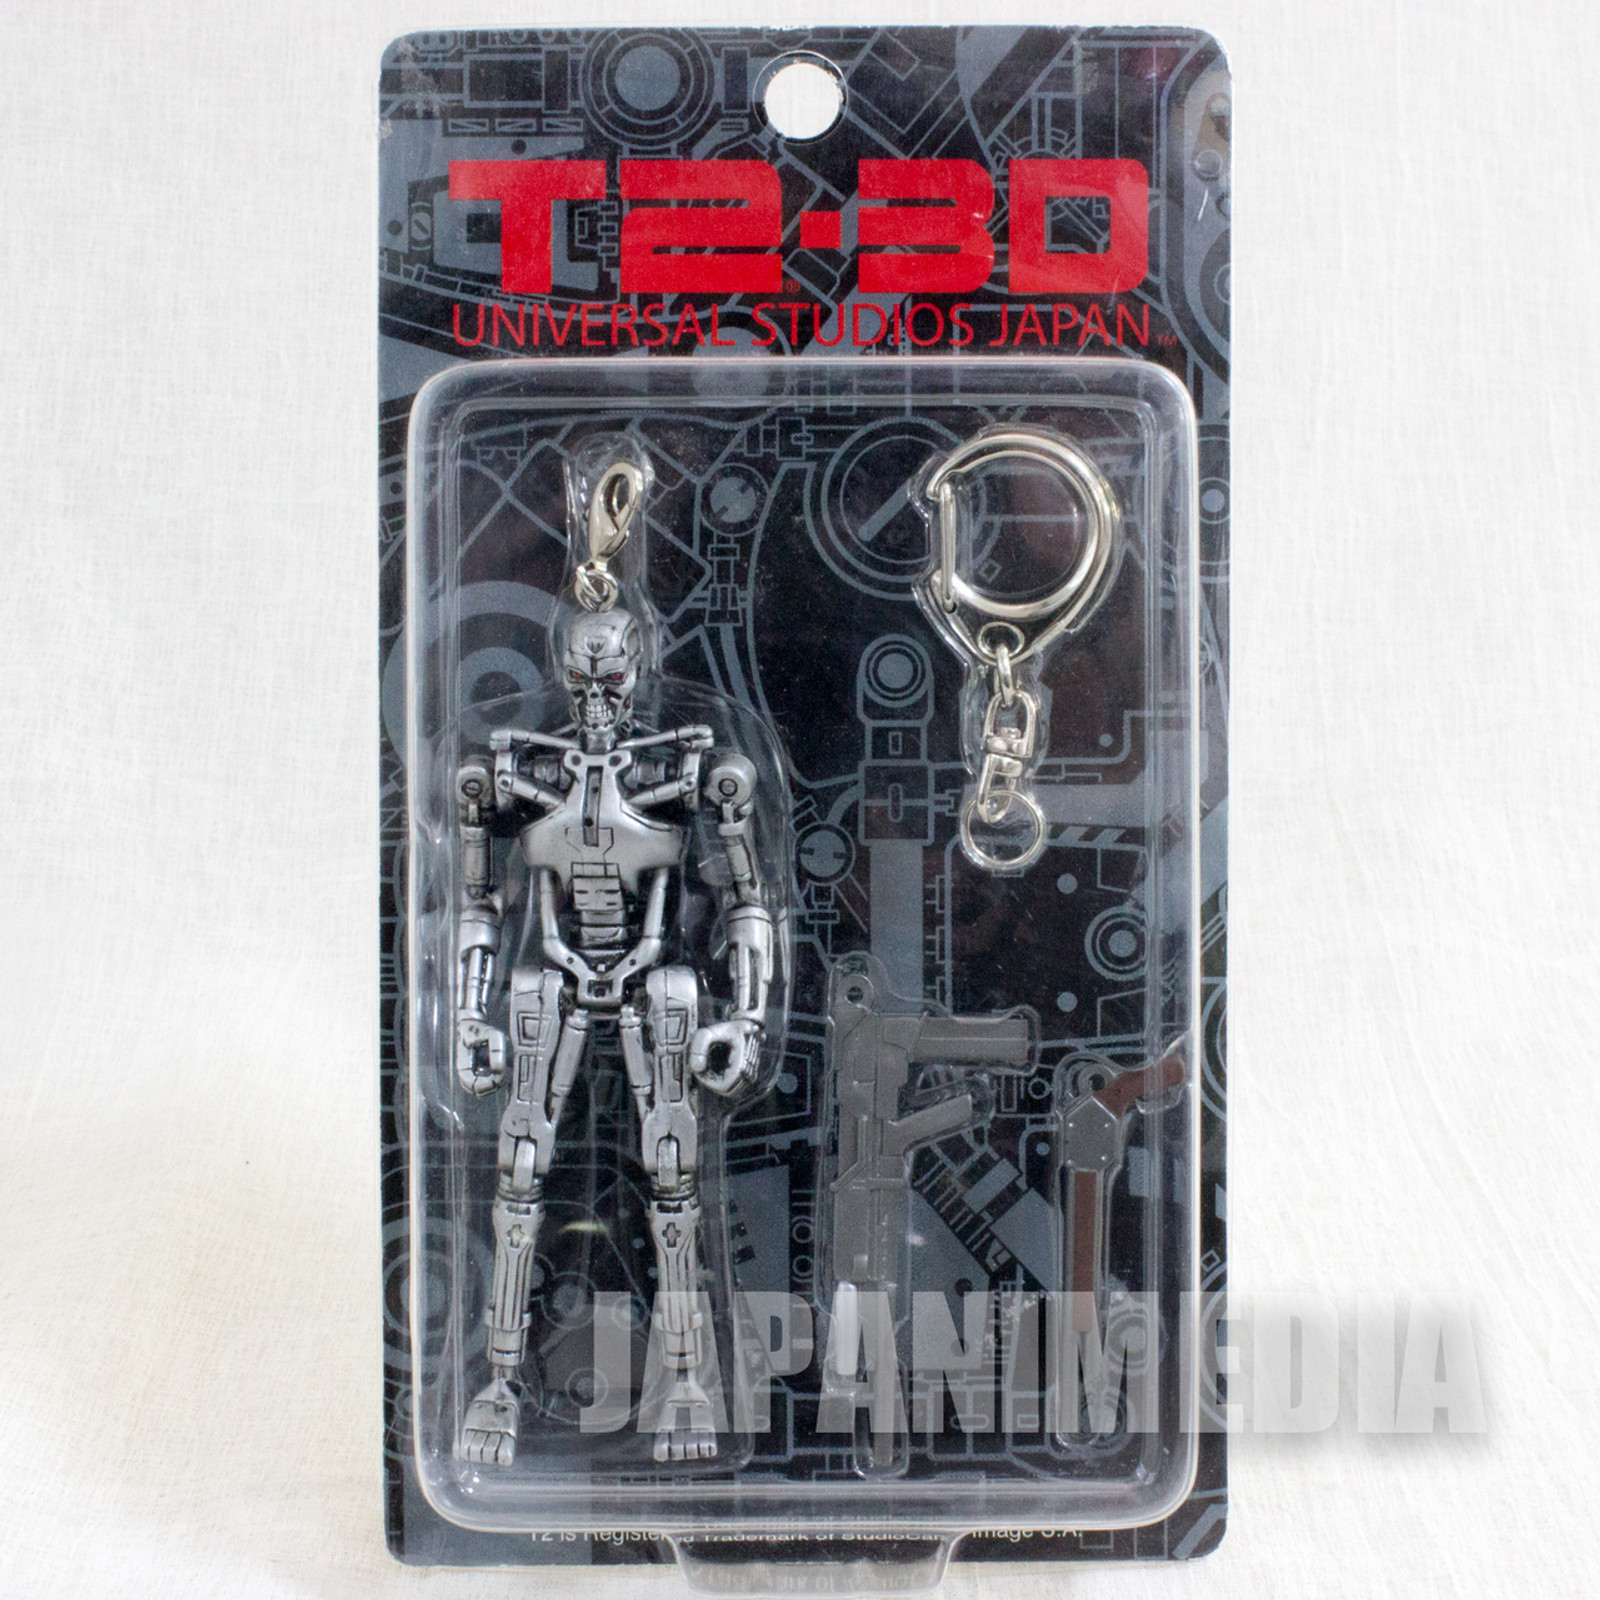 T2-3D Terminator USJ Universal Stuidos Japan Movie Figure Keychain Set JAPAN